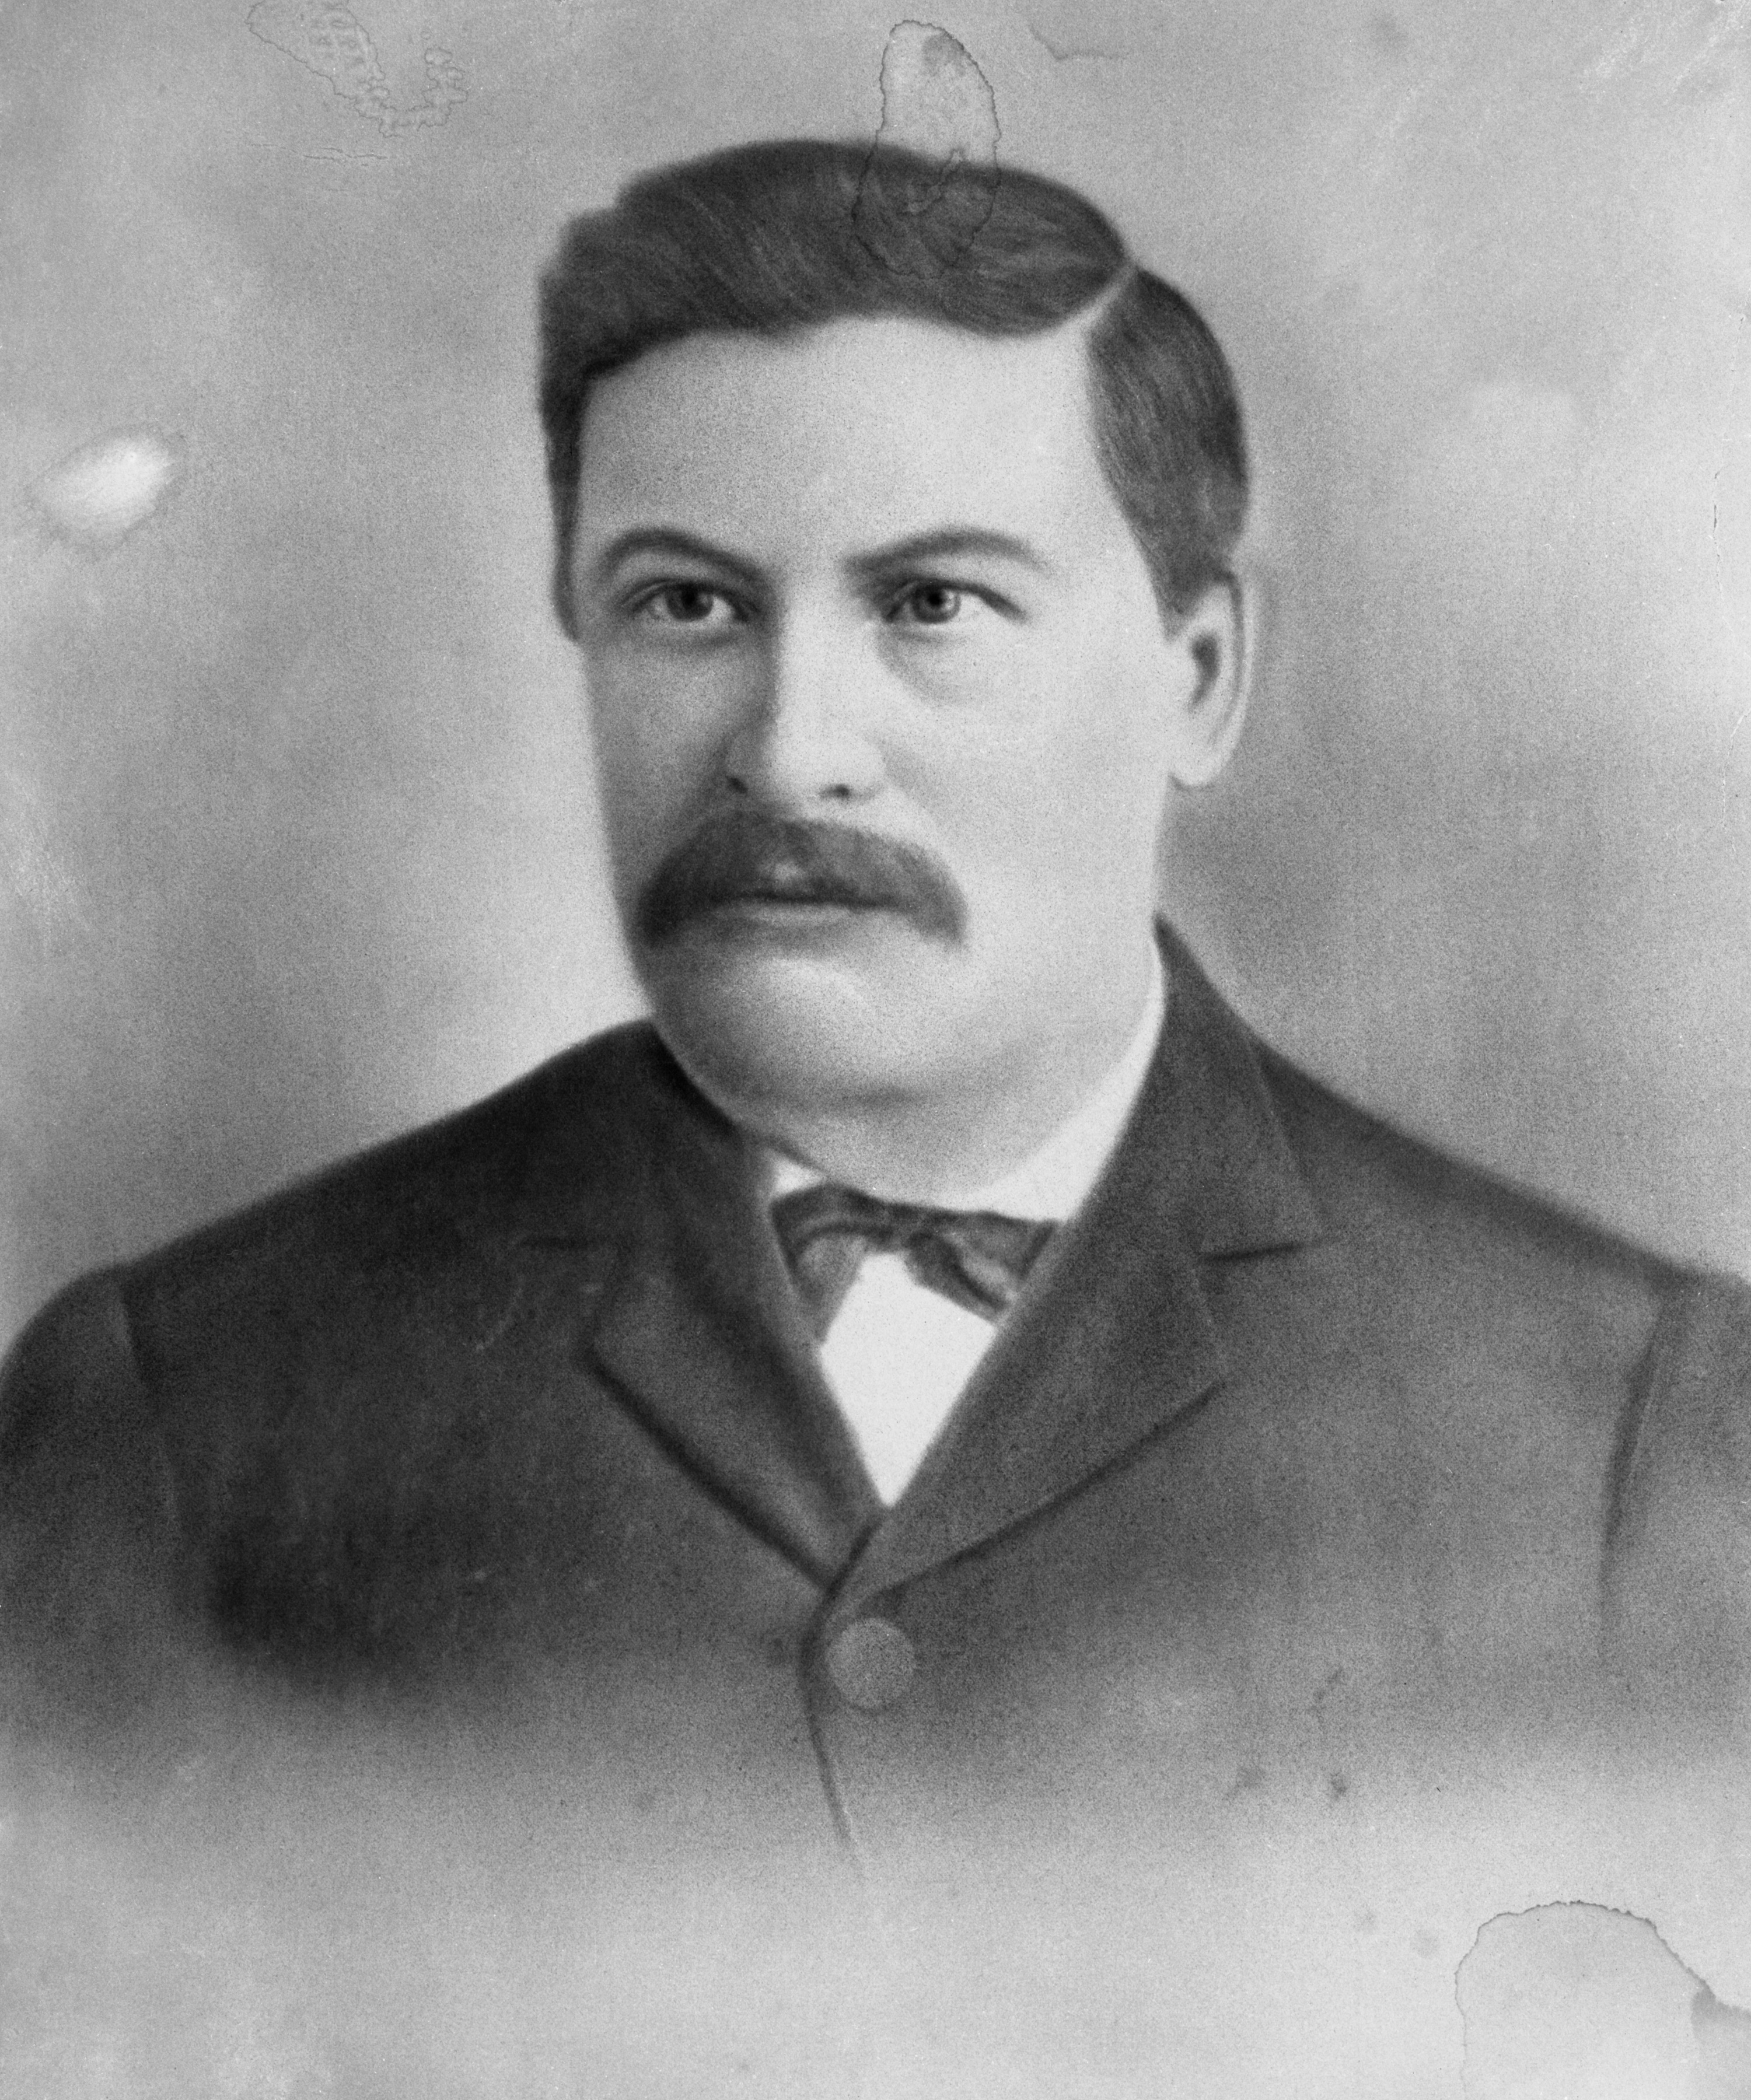 the life of james francis thrope - james francis thorpe accomplished without argument what no other athlete in history has the sac and fox indian won gold medals in the pentathlon and decathlon in the 1912 olympic games in sweden and played both professional football and professional baseball.